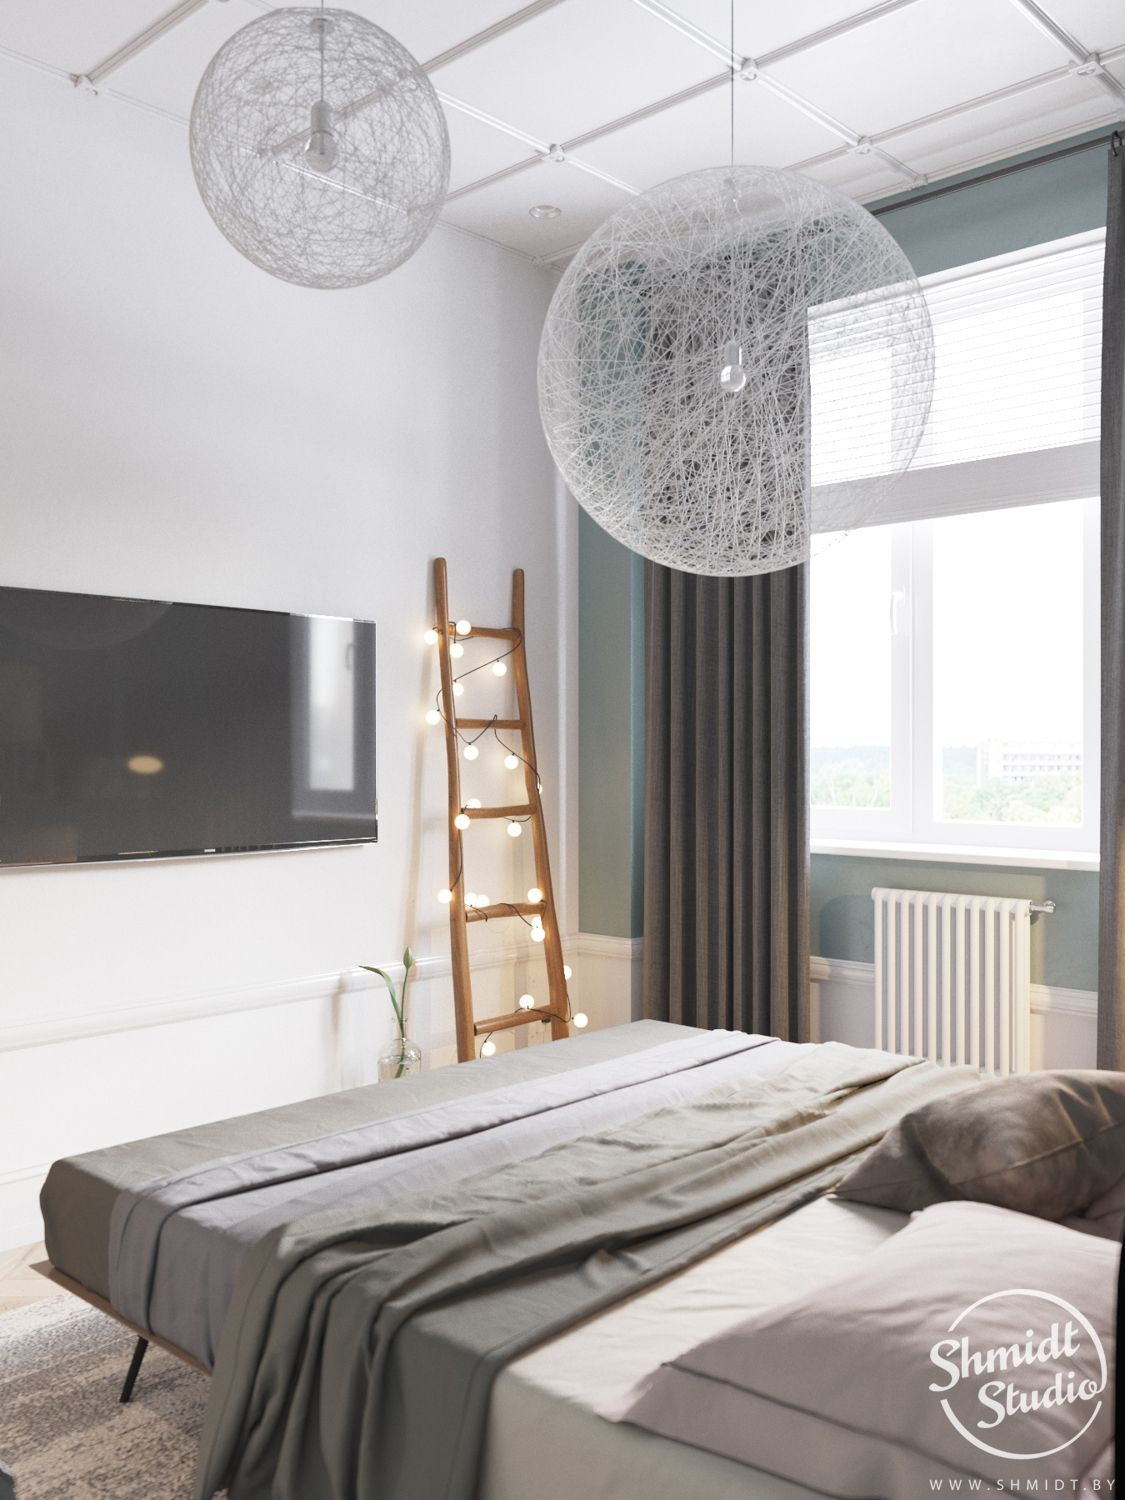 A Scandinavian Chic Style 3 Bedroom Apartment For A Young Family In 2020 Chic Interior Design Chic Interior Interior Design